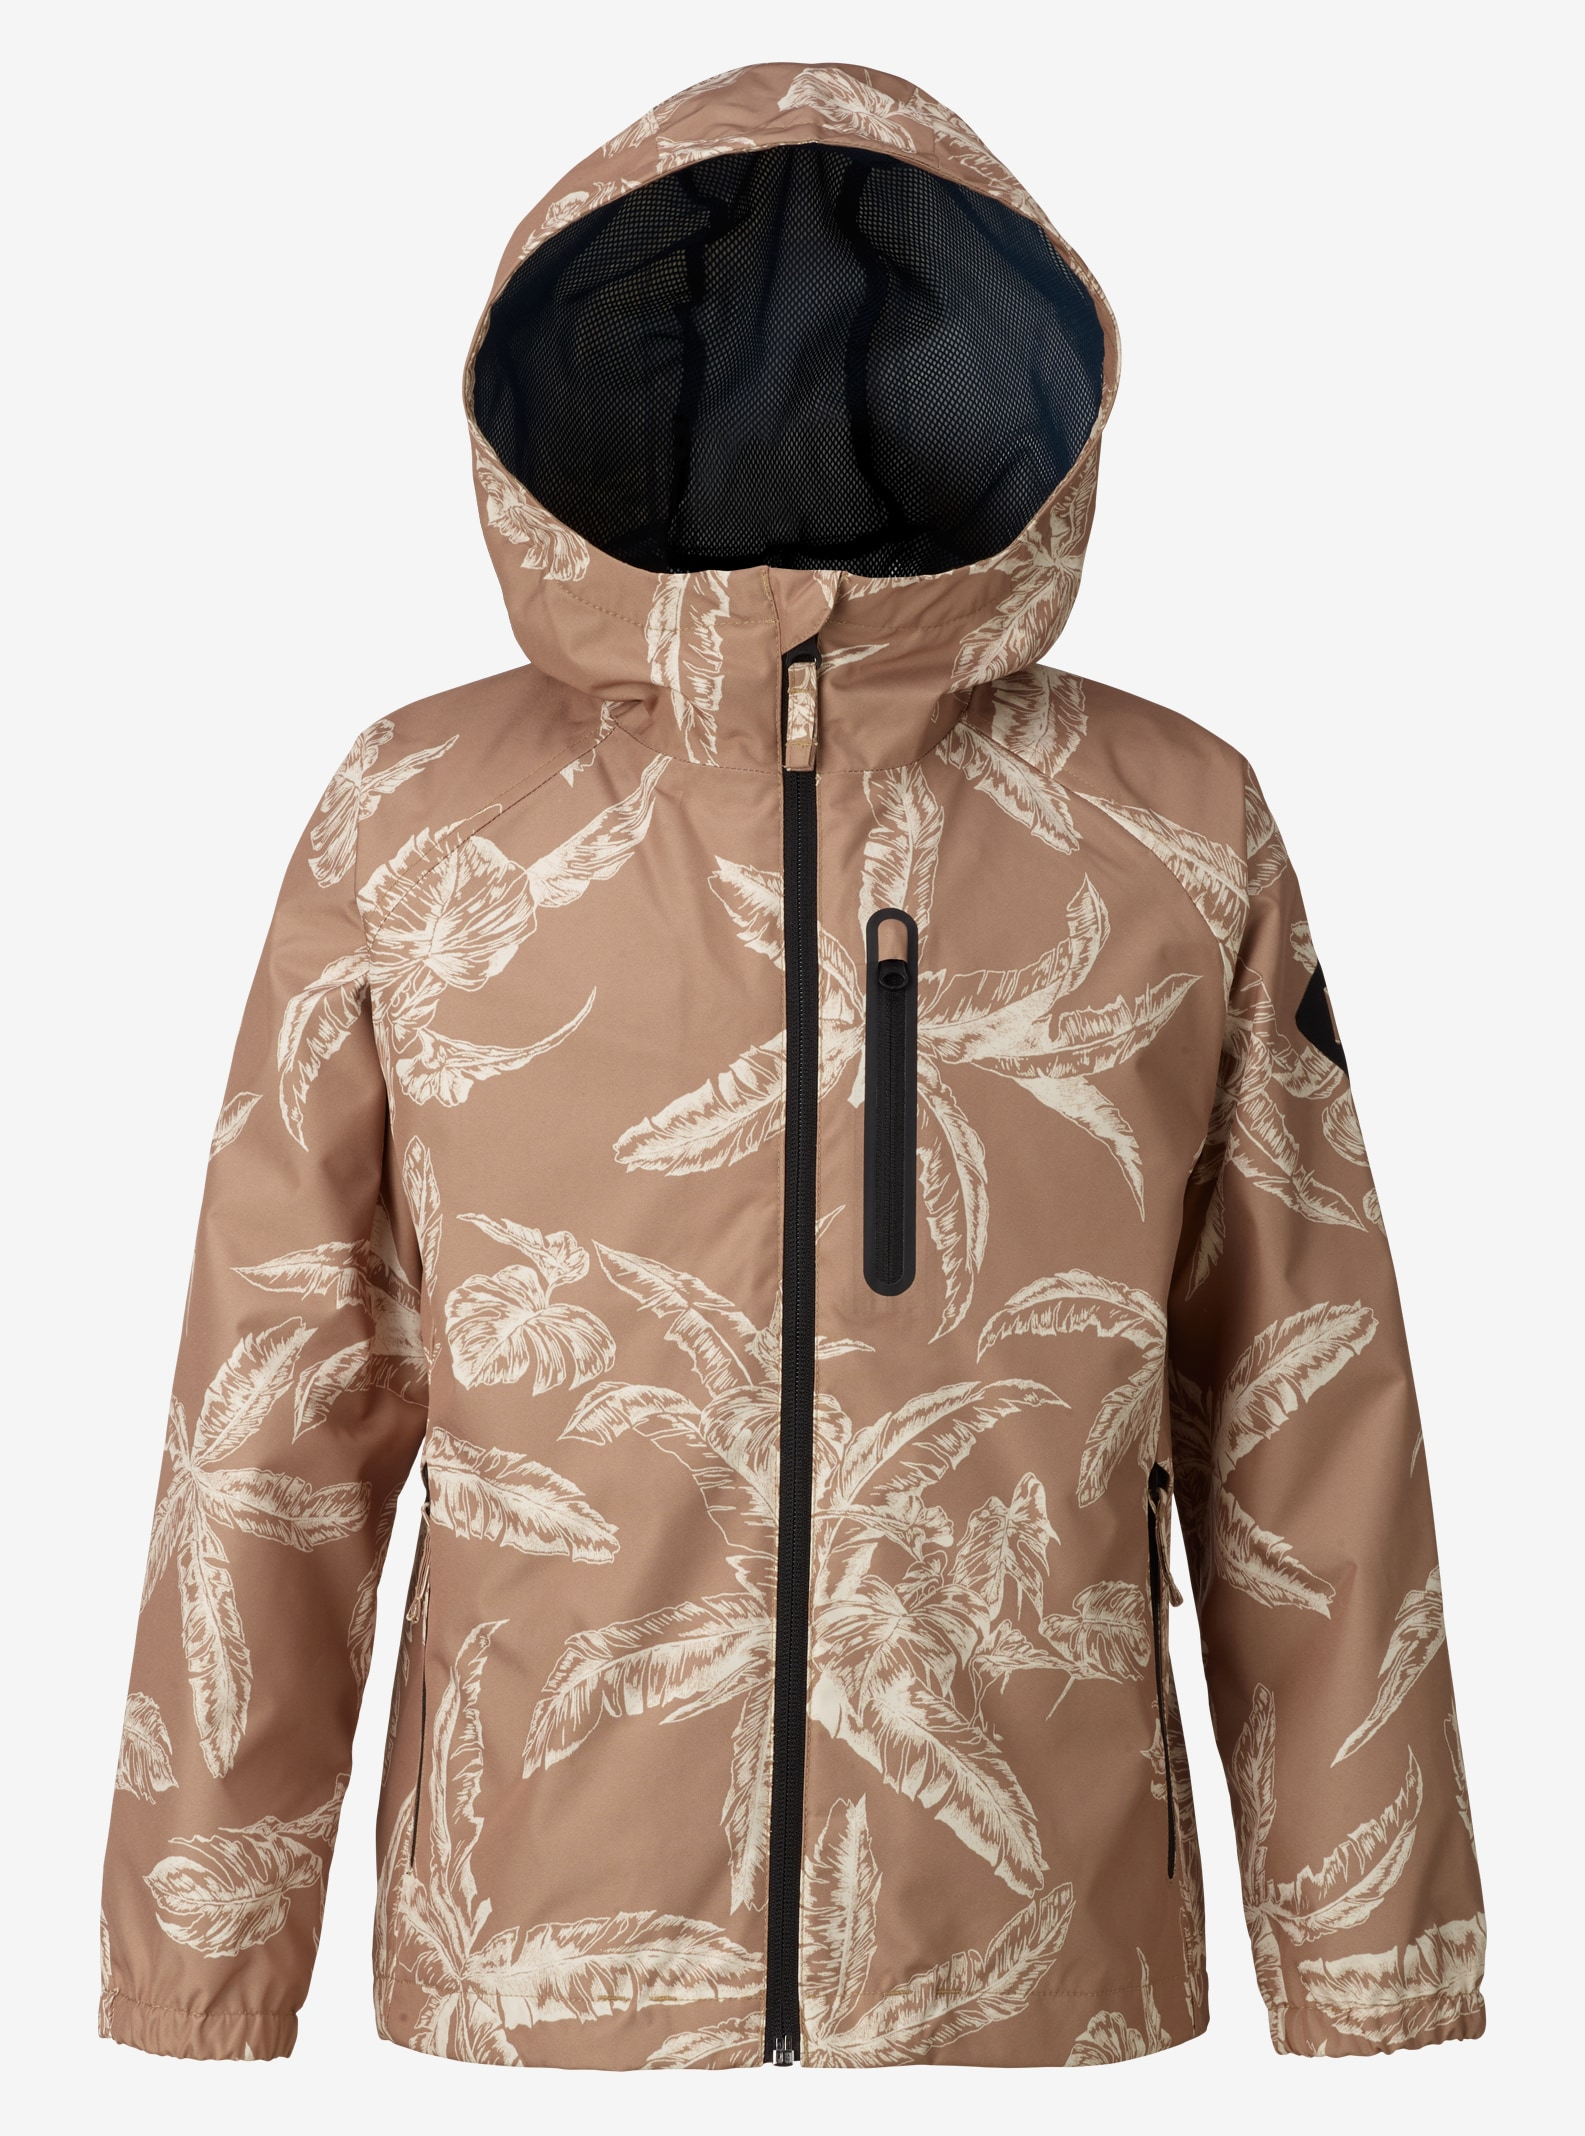 Burton Boys' Portal Rain Jacket shown in Kelp Tropical